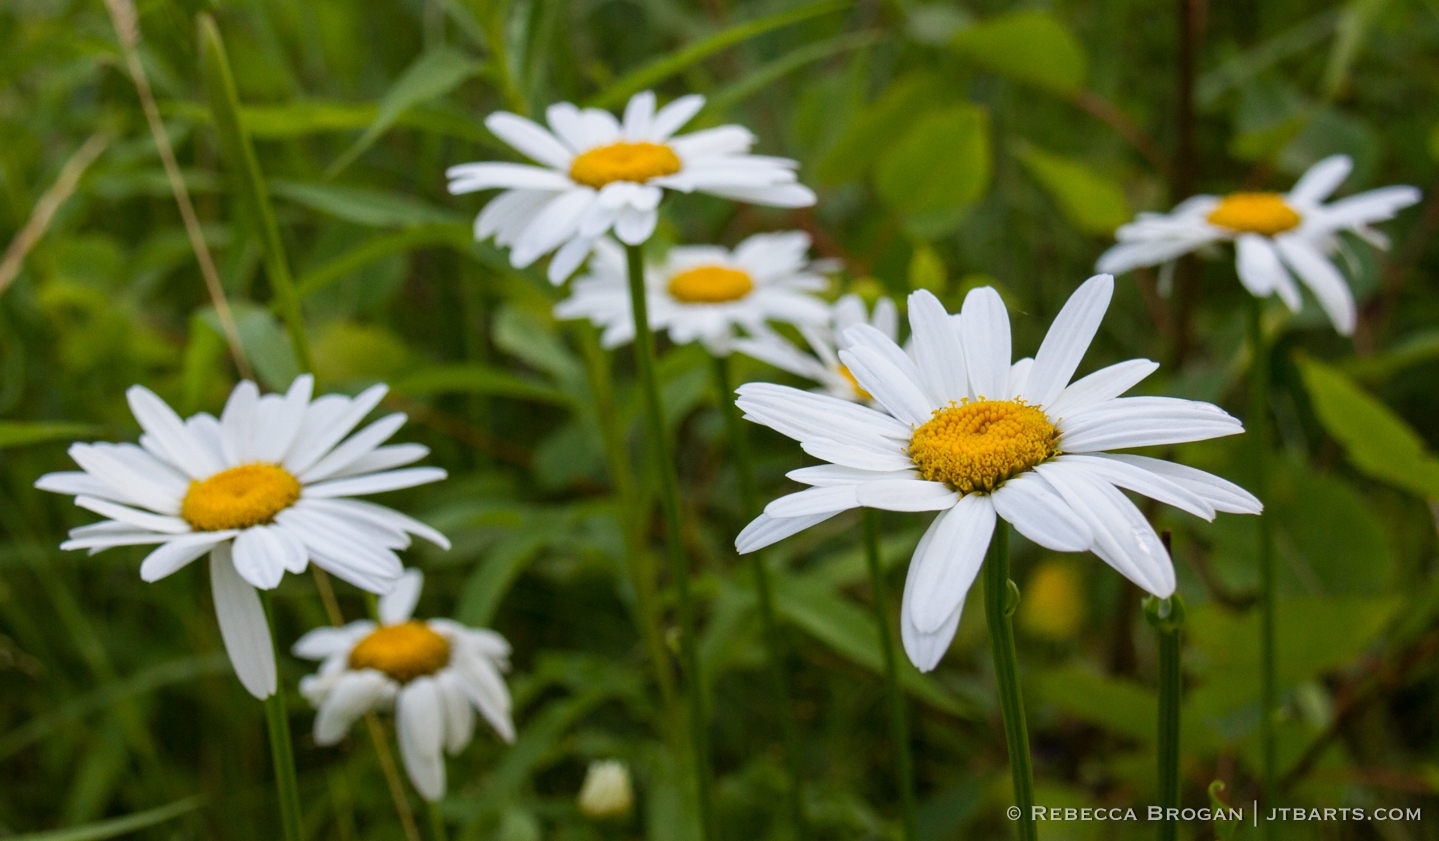 White Giant Daisies (Leucanthemum vulgare) photograph taken in Jay Cooke State Park, Minnesota.